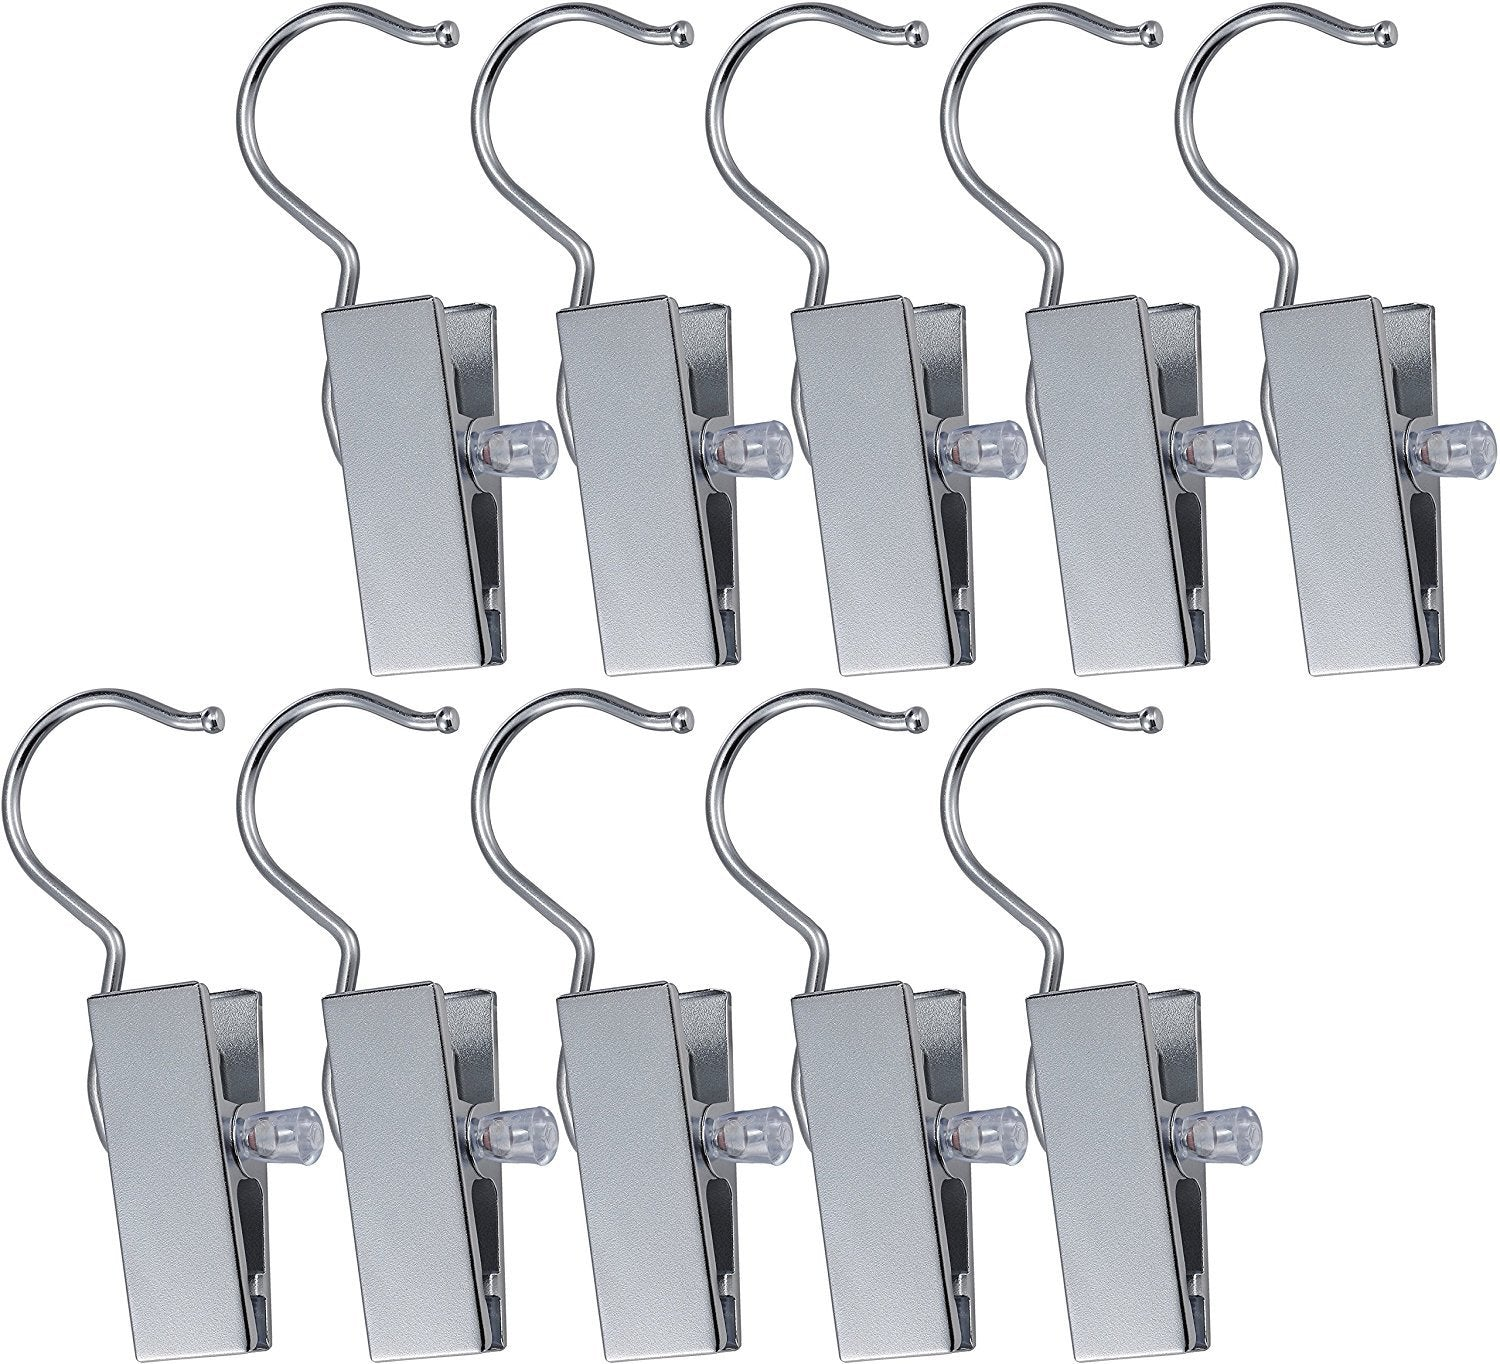 Pro Chef Kitchen Tools Stainless Steel Hanging Clip Hook - Set of 10 Brushed Nickel Clips to Organize and Hold Boots, Ball Caps, Baseball Hats, Laundry Hanger Metal Spring Clothespin Replacement